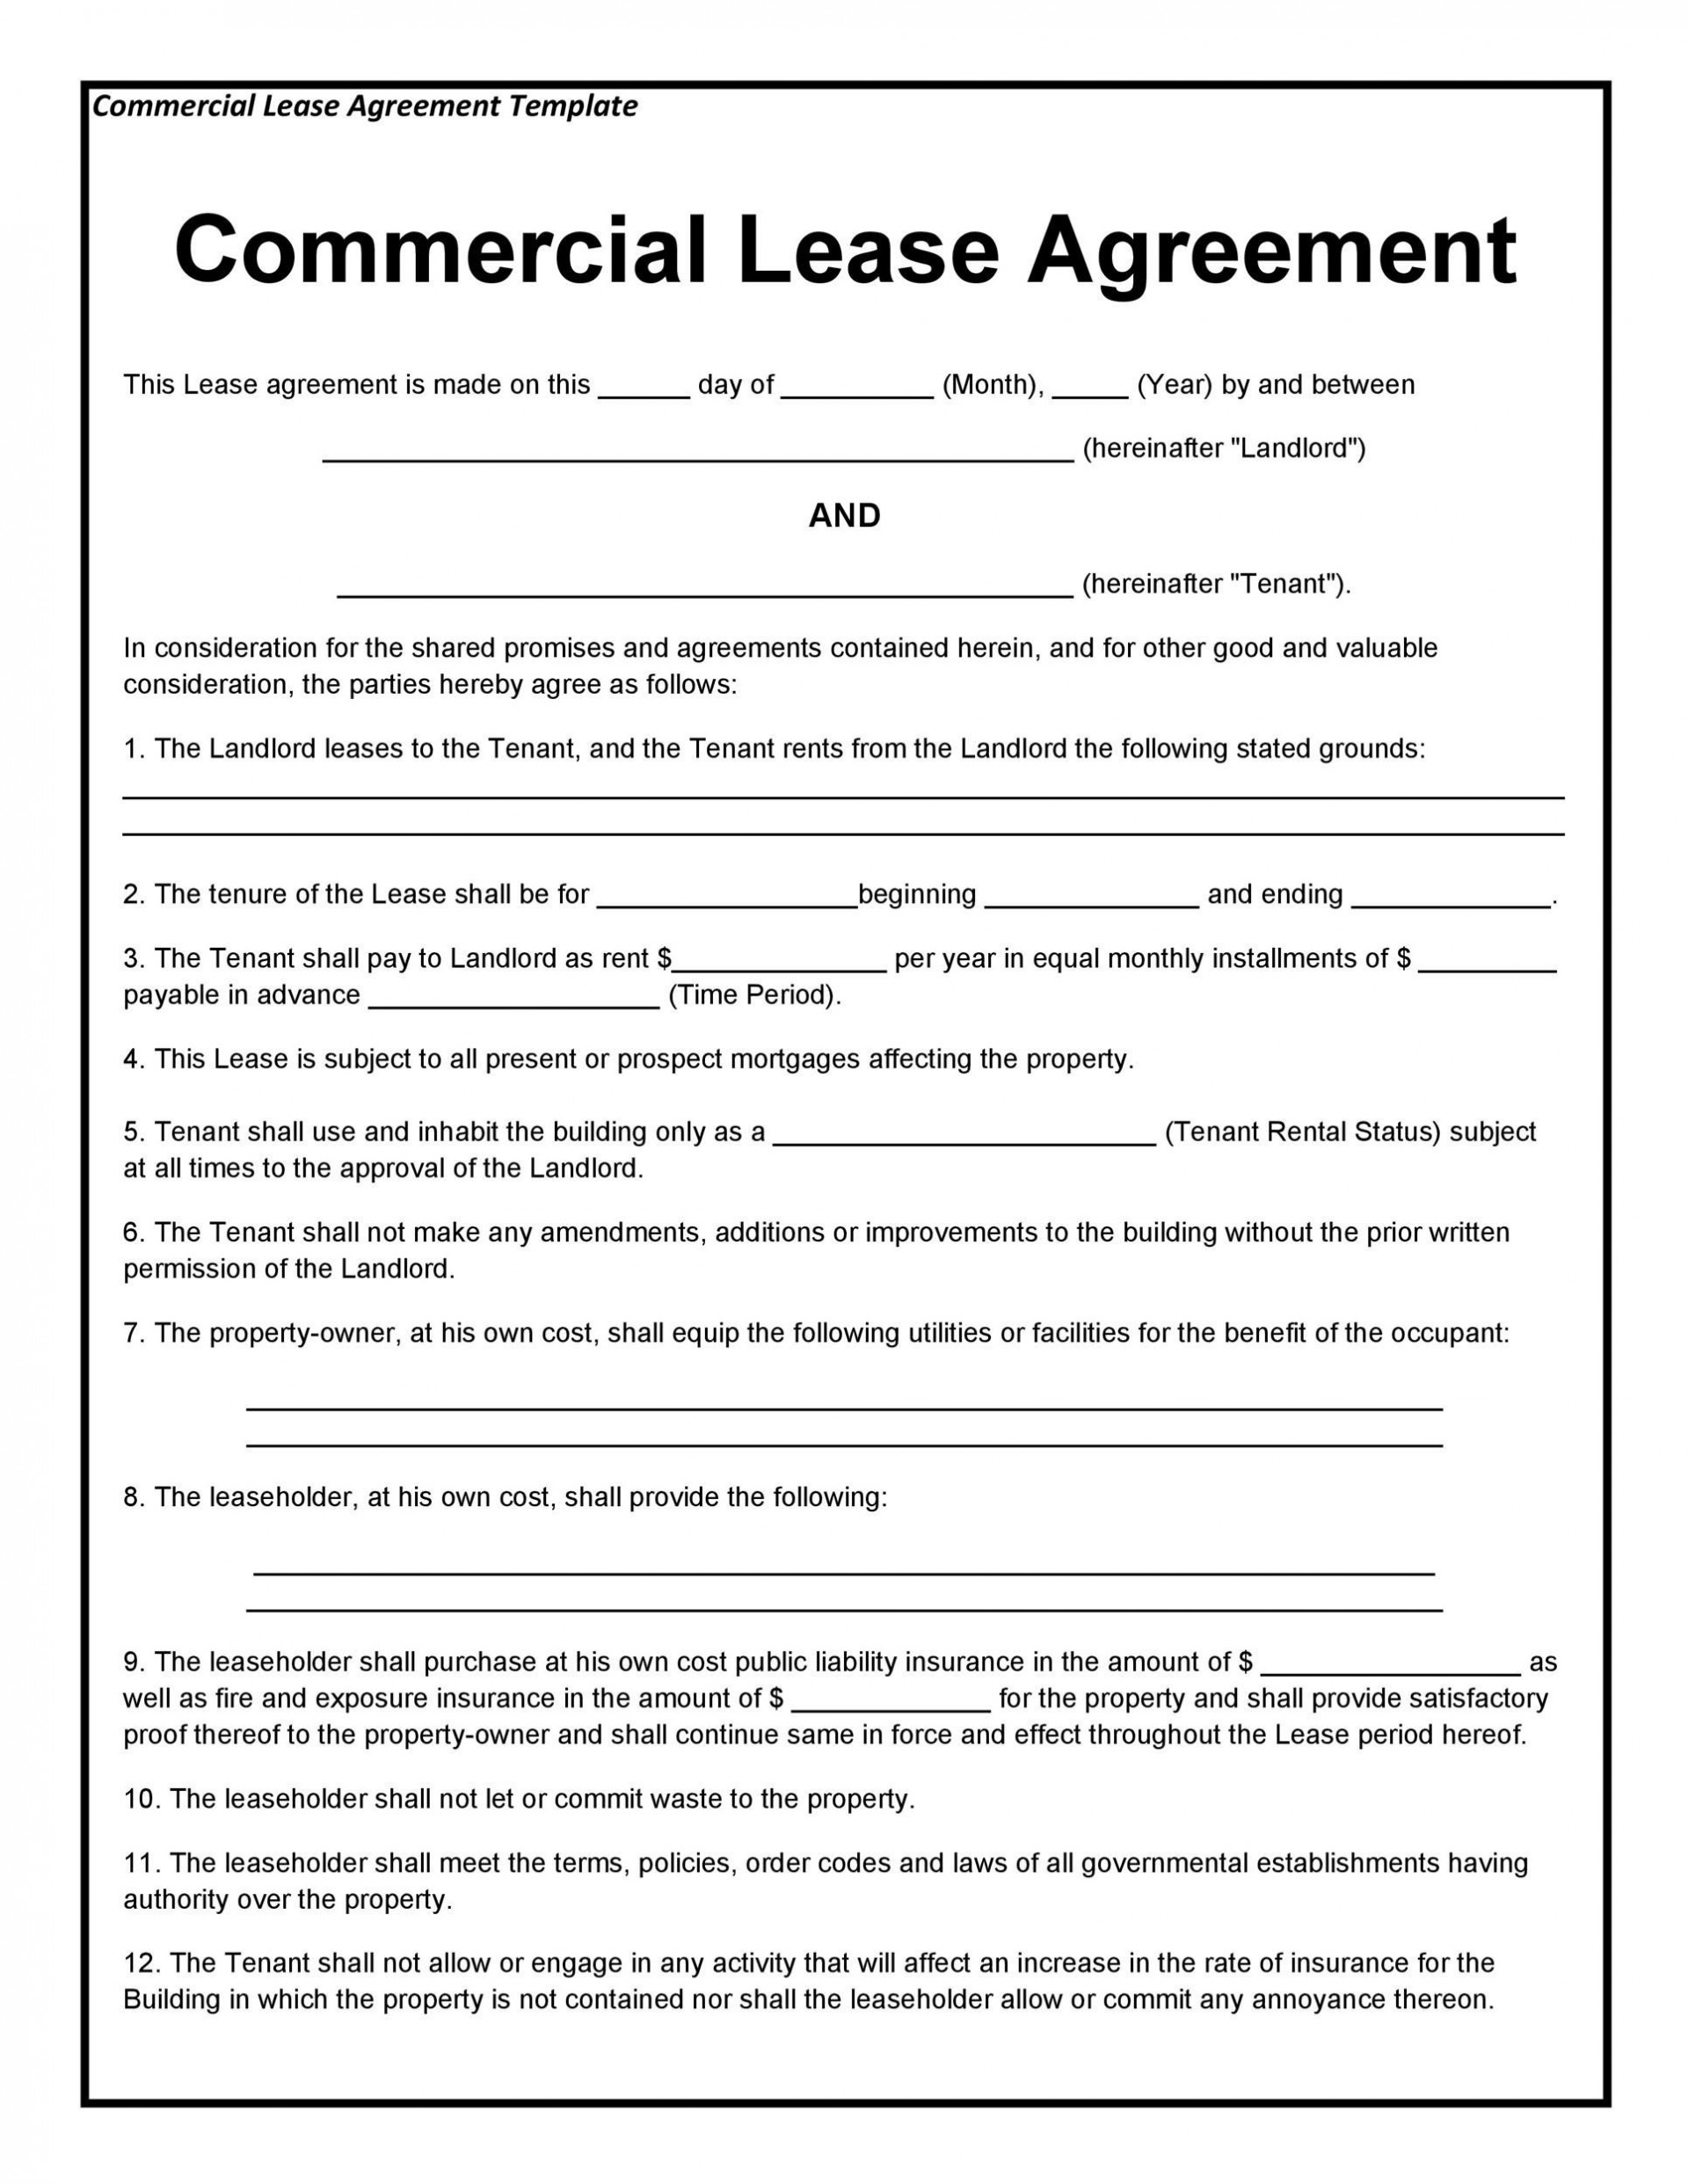 004 Unique Land Lease Agreement Template Image  Templates Uk Farm Free1920